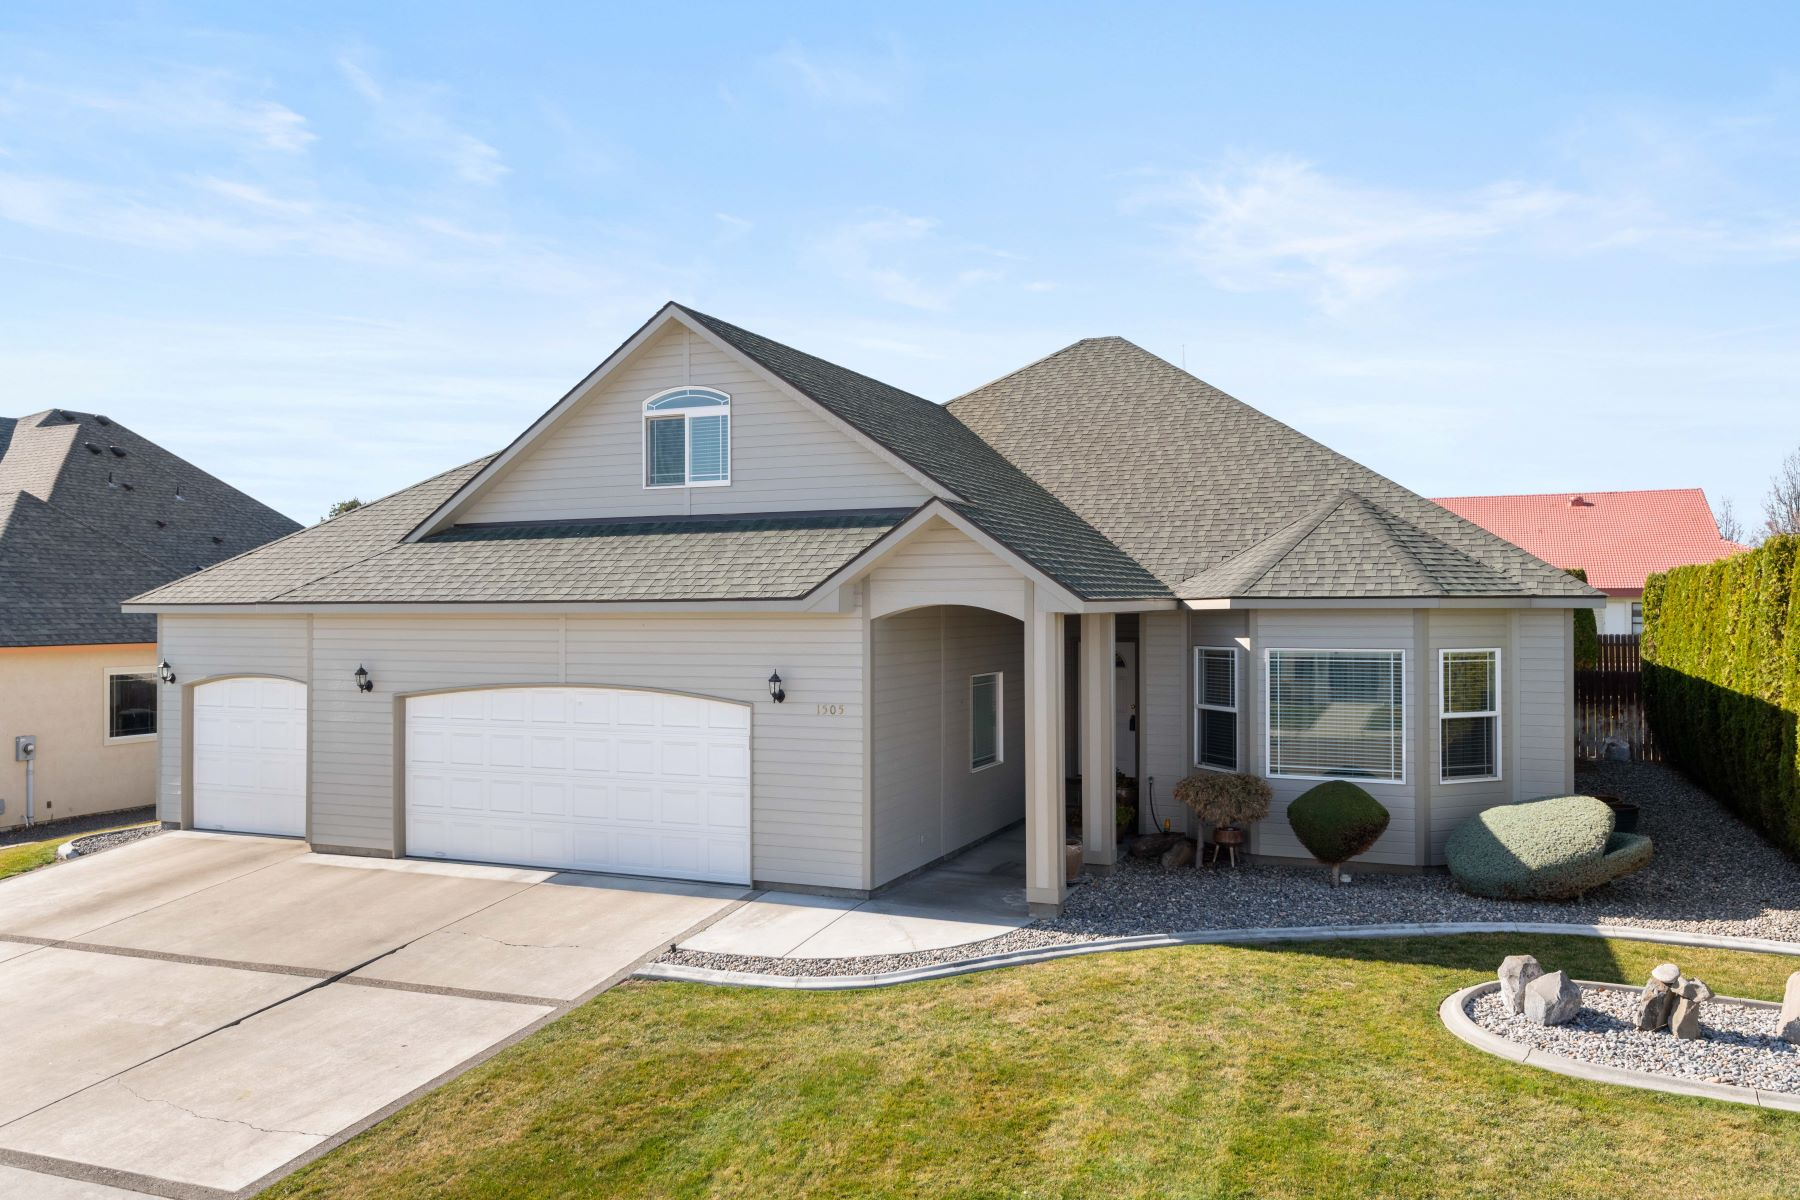 Single Family Homes for Sale at Immaculate Rambler! 1505 S 44th Avenue, West Richland, Washington 99353 United States